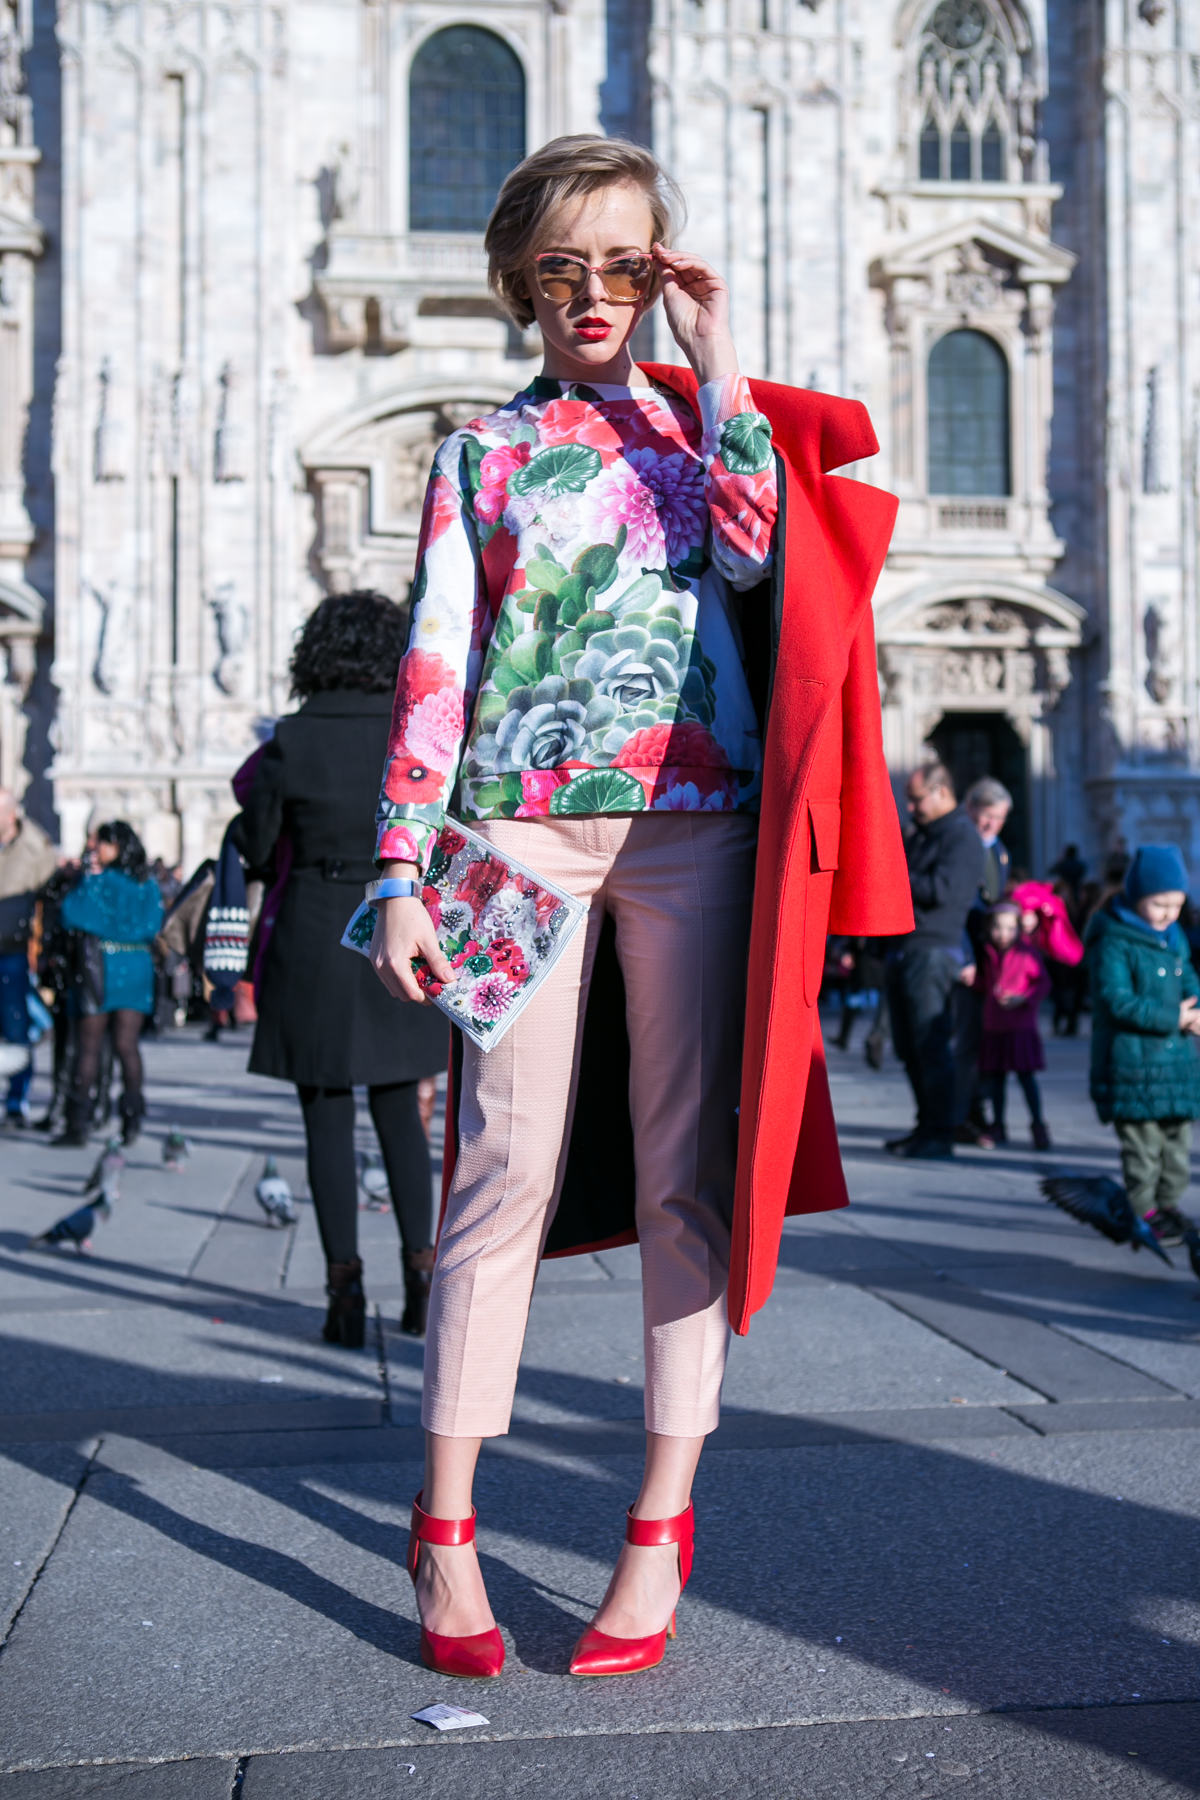 thecablook darya kamalova russian italian blogger street style short blonde hair mfw milan fashion week duomo safilo simone falcetta tods presentation uma wang fashion show long red coat-76